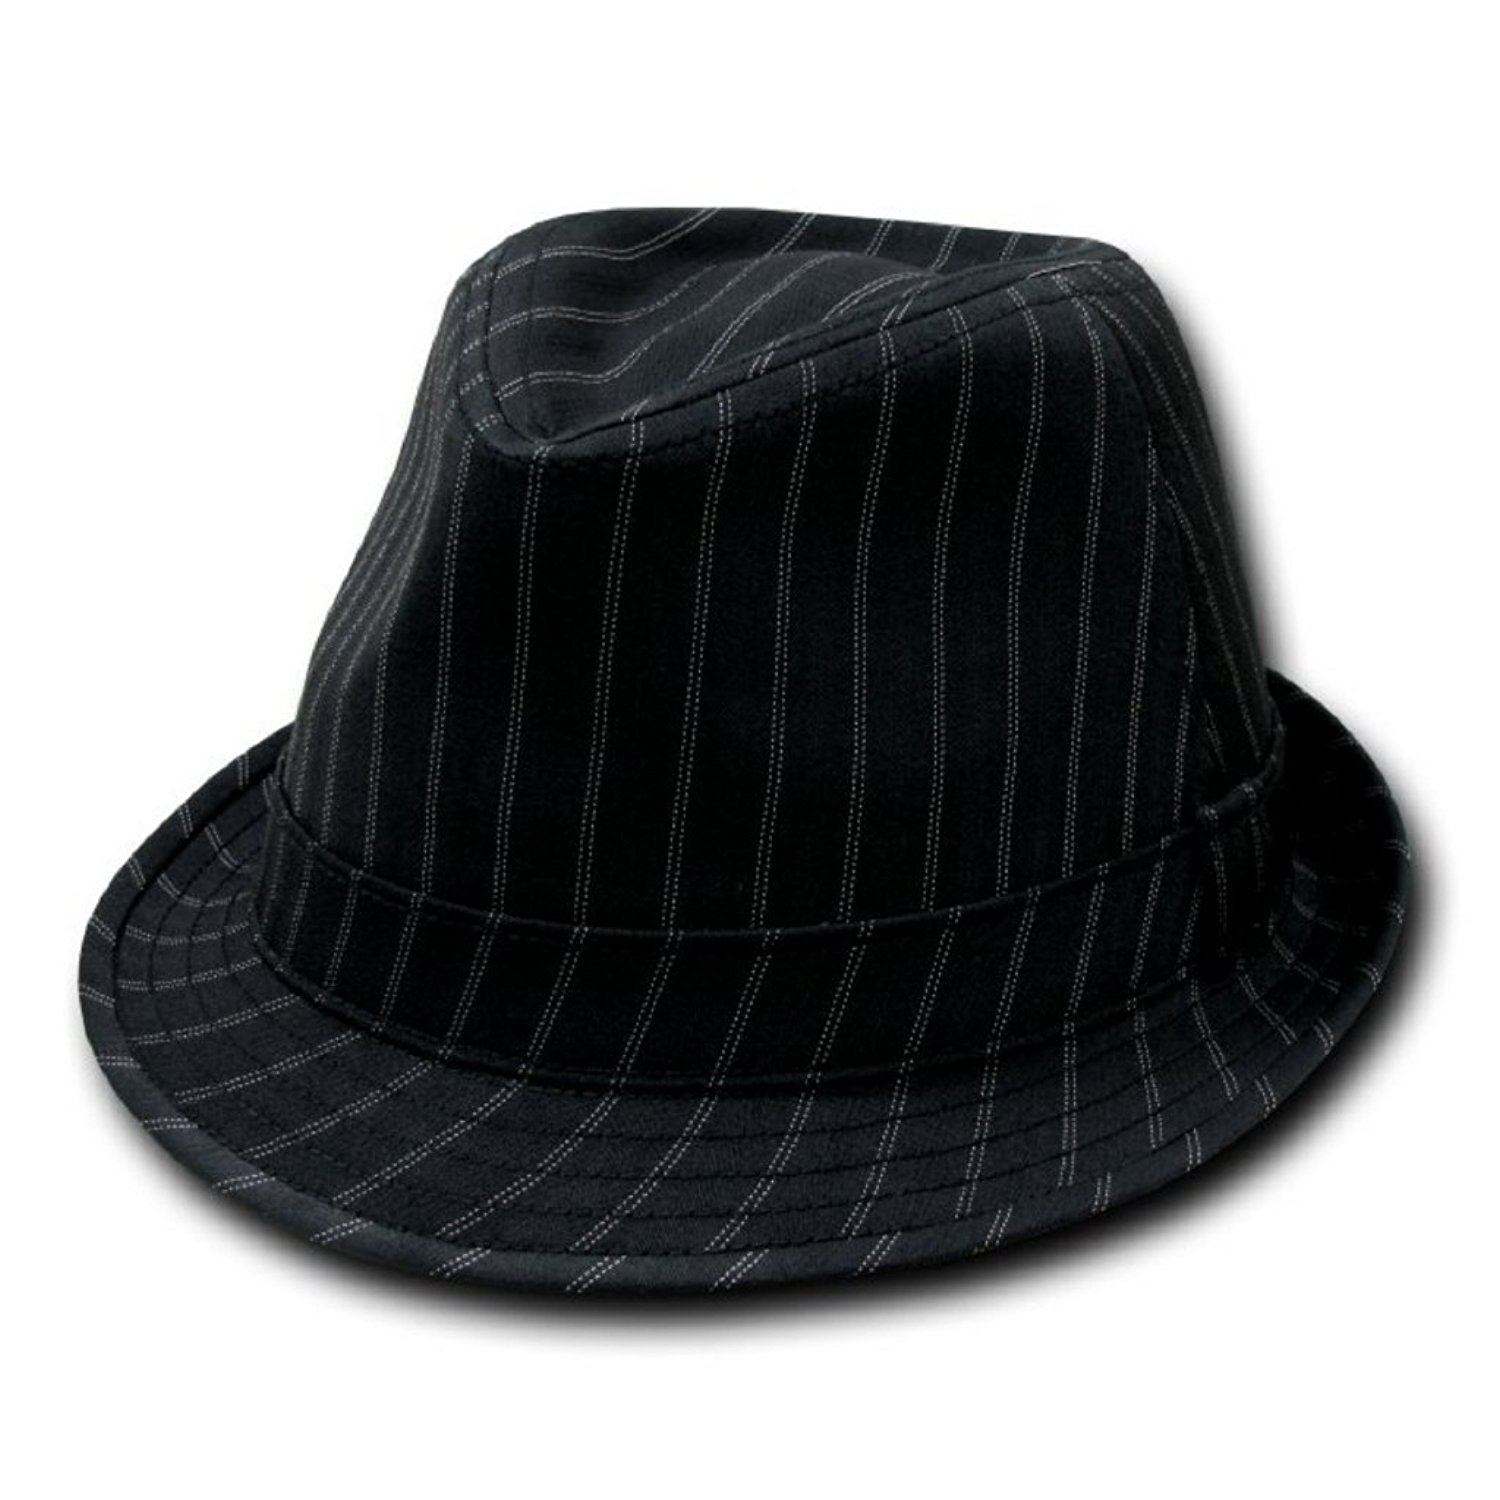 351b05a0fad5d Get Quotations · Decky Double Pinstripe Fashion Fedora Hat Black  (Small Medium)